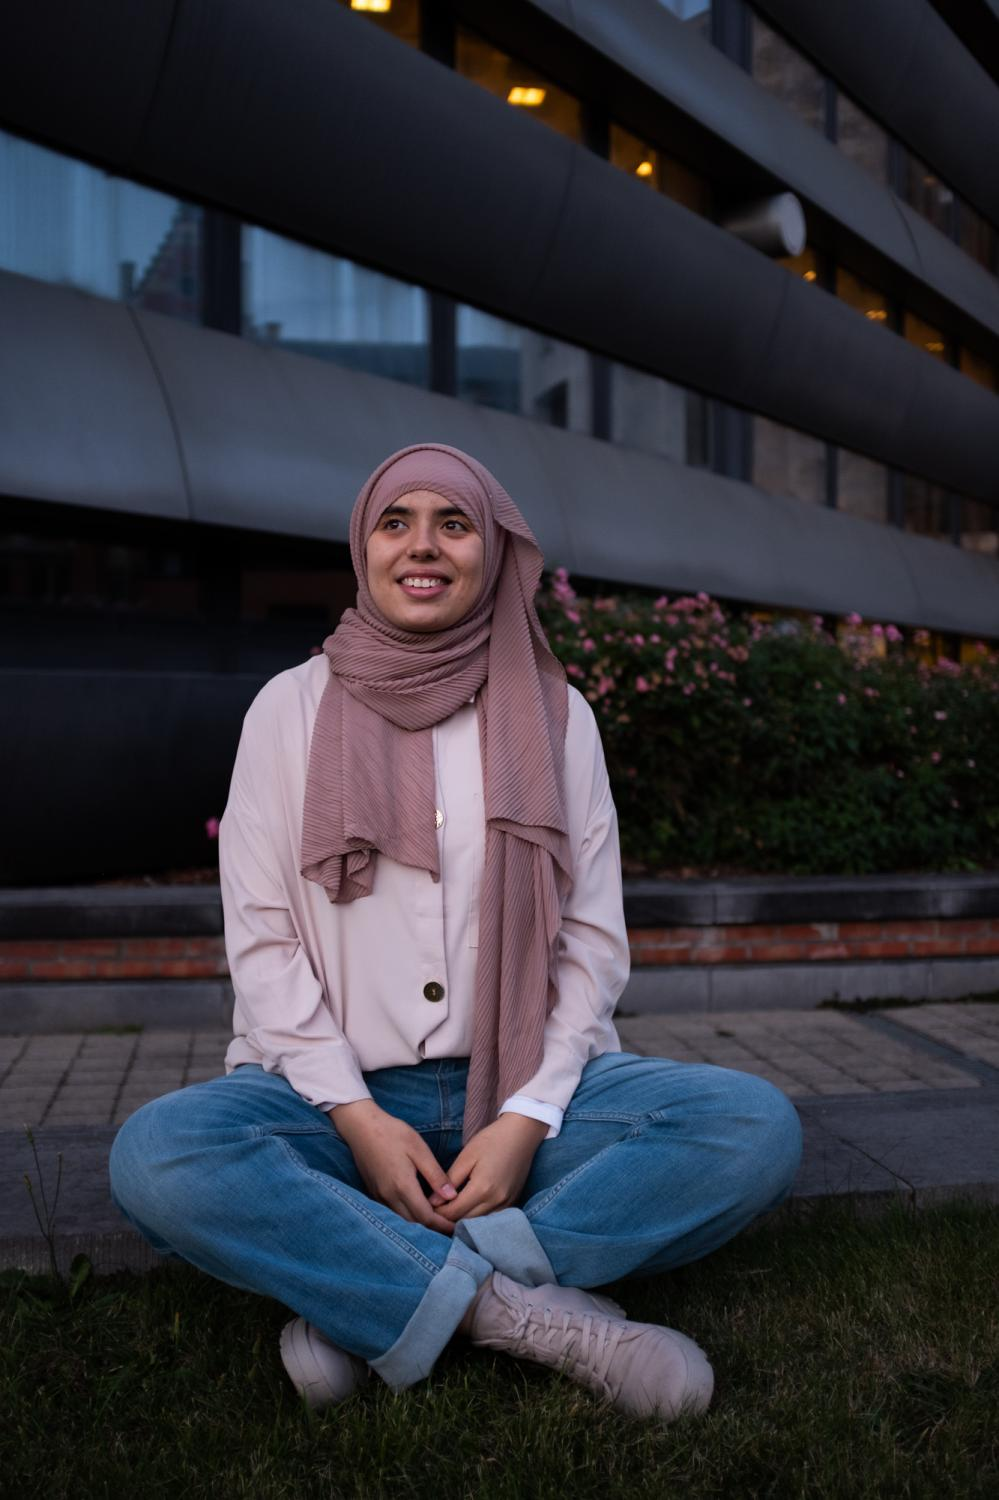 """""""Studies are what help me move forward, they are like a crutch, if I don't have access to them, my whole world collapses. I also feel that studying compensates for the fact that I am a foreign Muslim woman who wears a headscarf. I study to learn new skills to be useful for the society, but I'm sick of having to stress about my future internship, my future job, my future. """" Sarah El Harmoussi, 23, is in her final year of a master's degree in clinical psychology at ULB. She has always known that she wanted to study at university and she feels fulfilled in this faculty full of kindness and open-mindedness. But the hardest thing for Sarah was to find an internship that would accept her as she is. It took her a year to find an internship in an association after she passed an interview with her scarf. But one month later, her internship supervisor called her back to mention that she had forgotten to warn her that the veil was forbidden. Shocked, she decided not to let herself be defeated and launched an appeal on social networks. Thanks to this online solidarity, Sarah was able to find an internship at Médecins du Monde. """"I fight for the acceptance of everyone in their difference""""."""